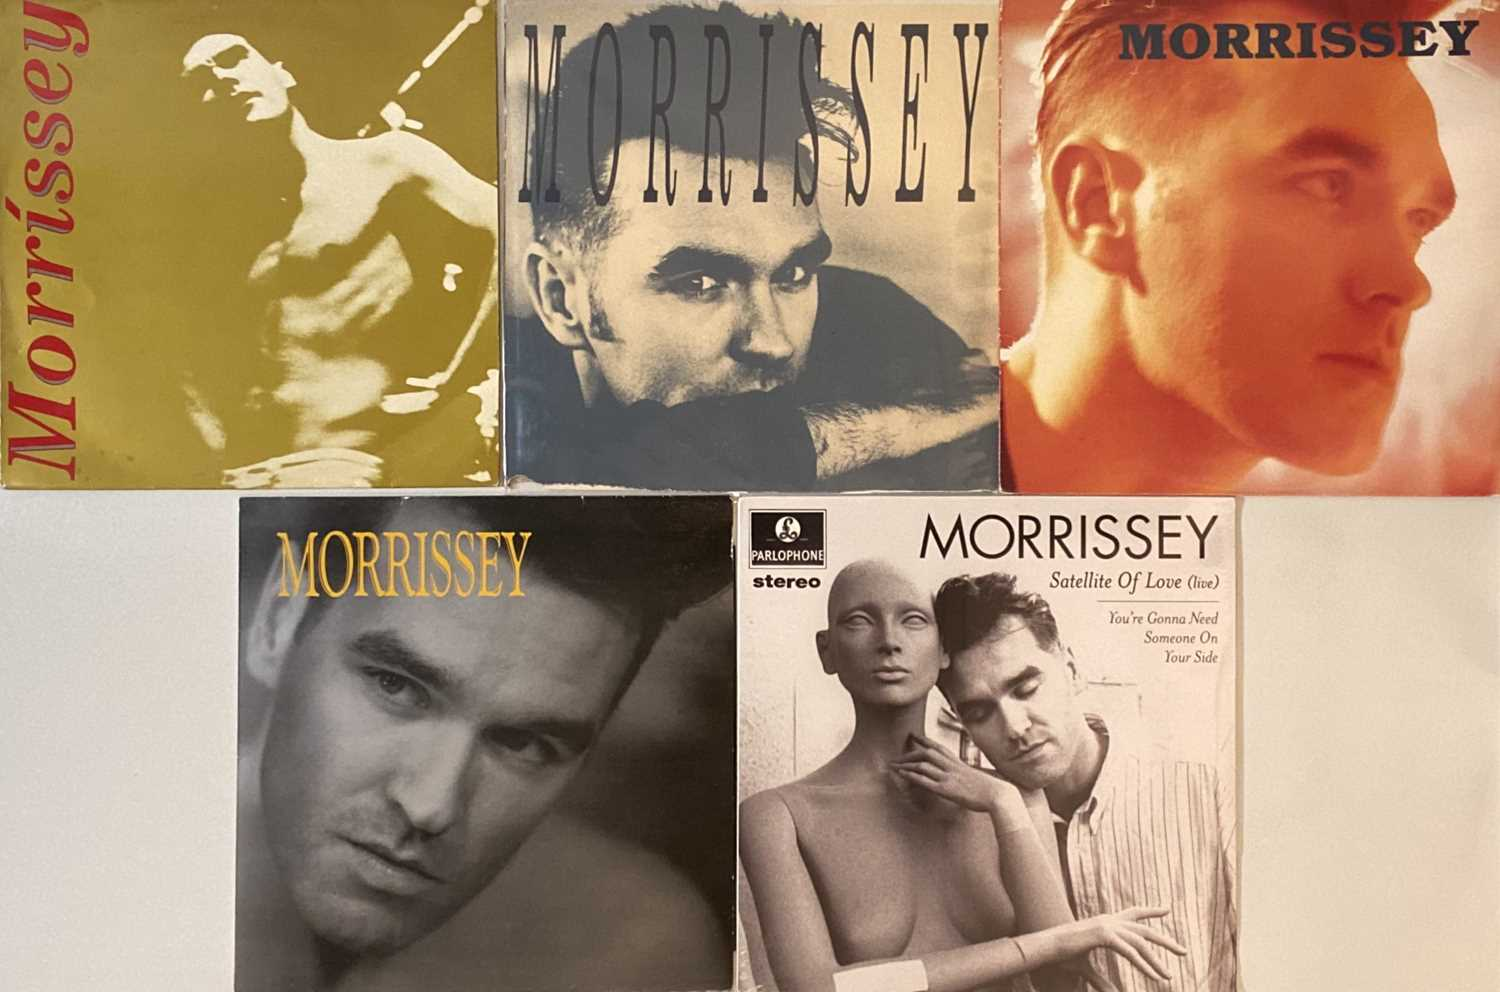 """THE SMITHS/ MORRISSEY - LPs/ 12"""" - Image 3 of 3"""